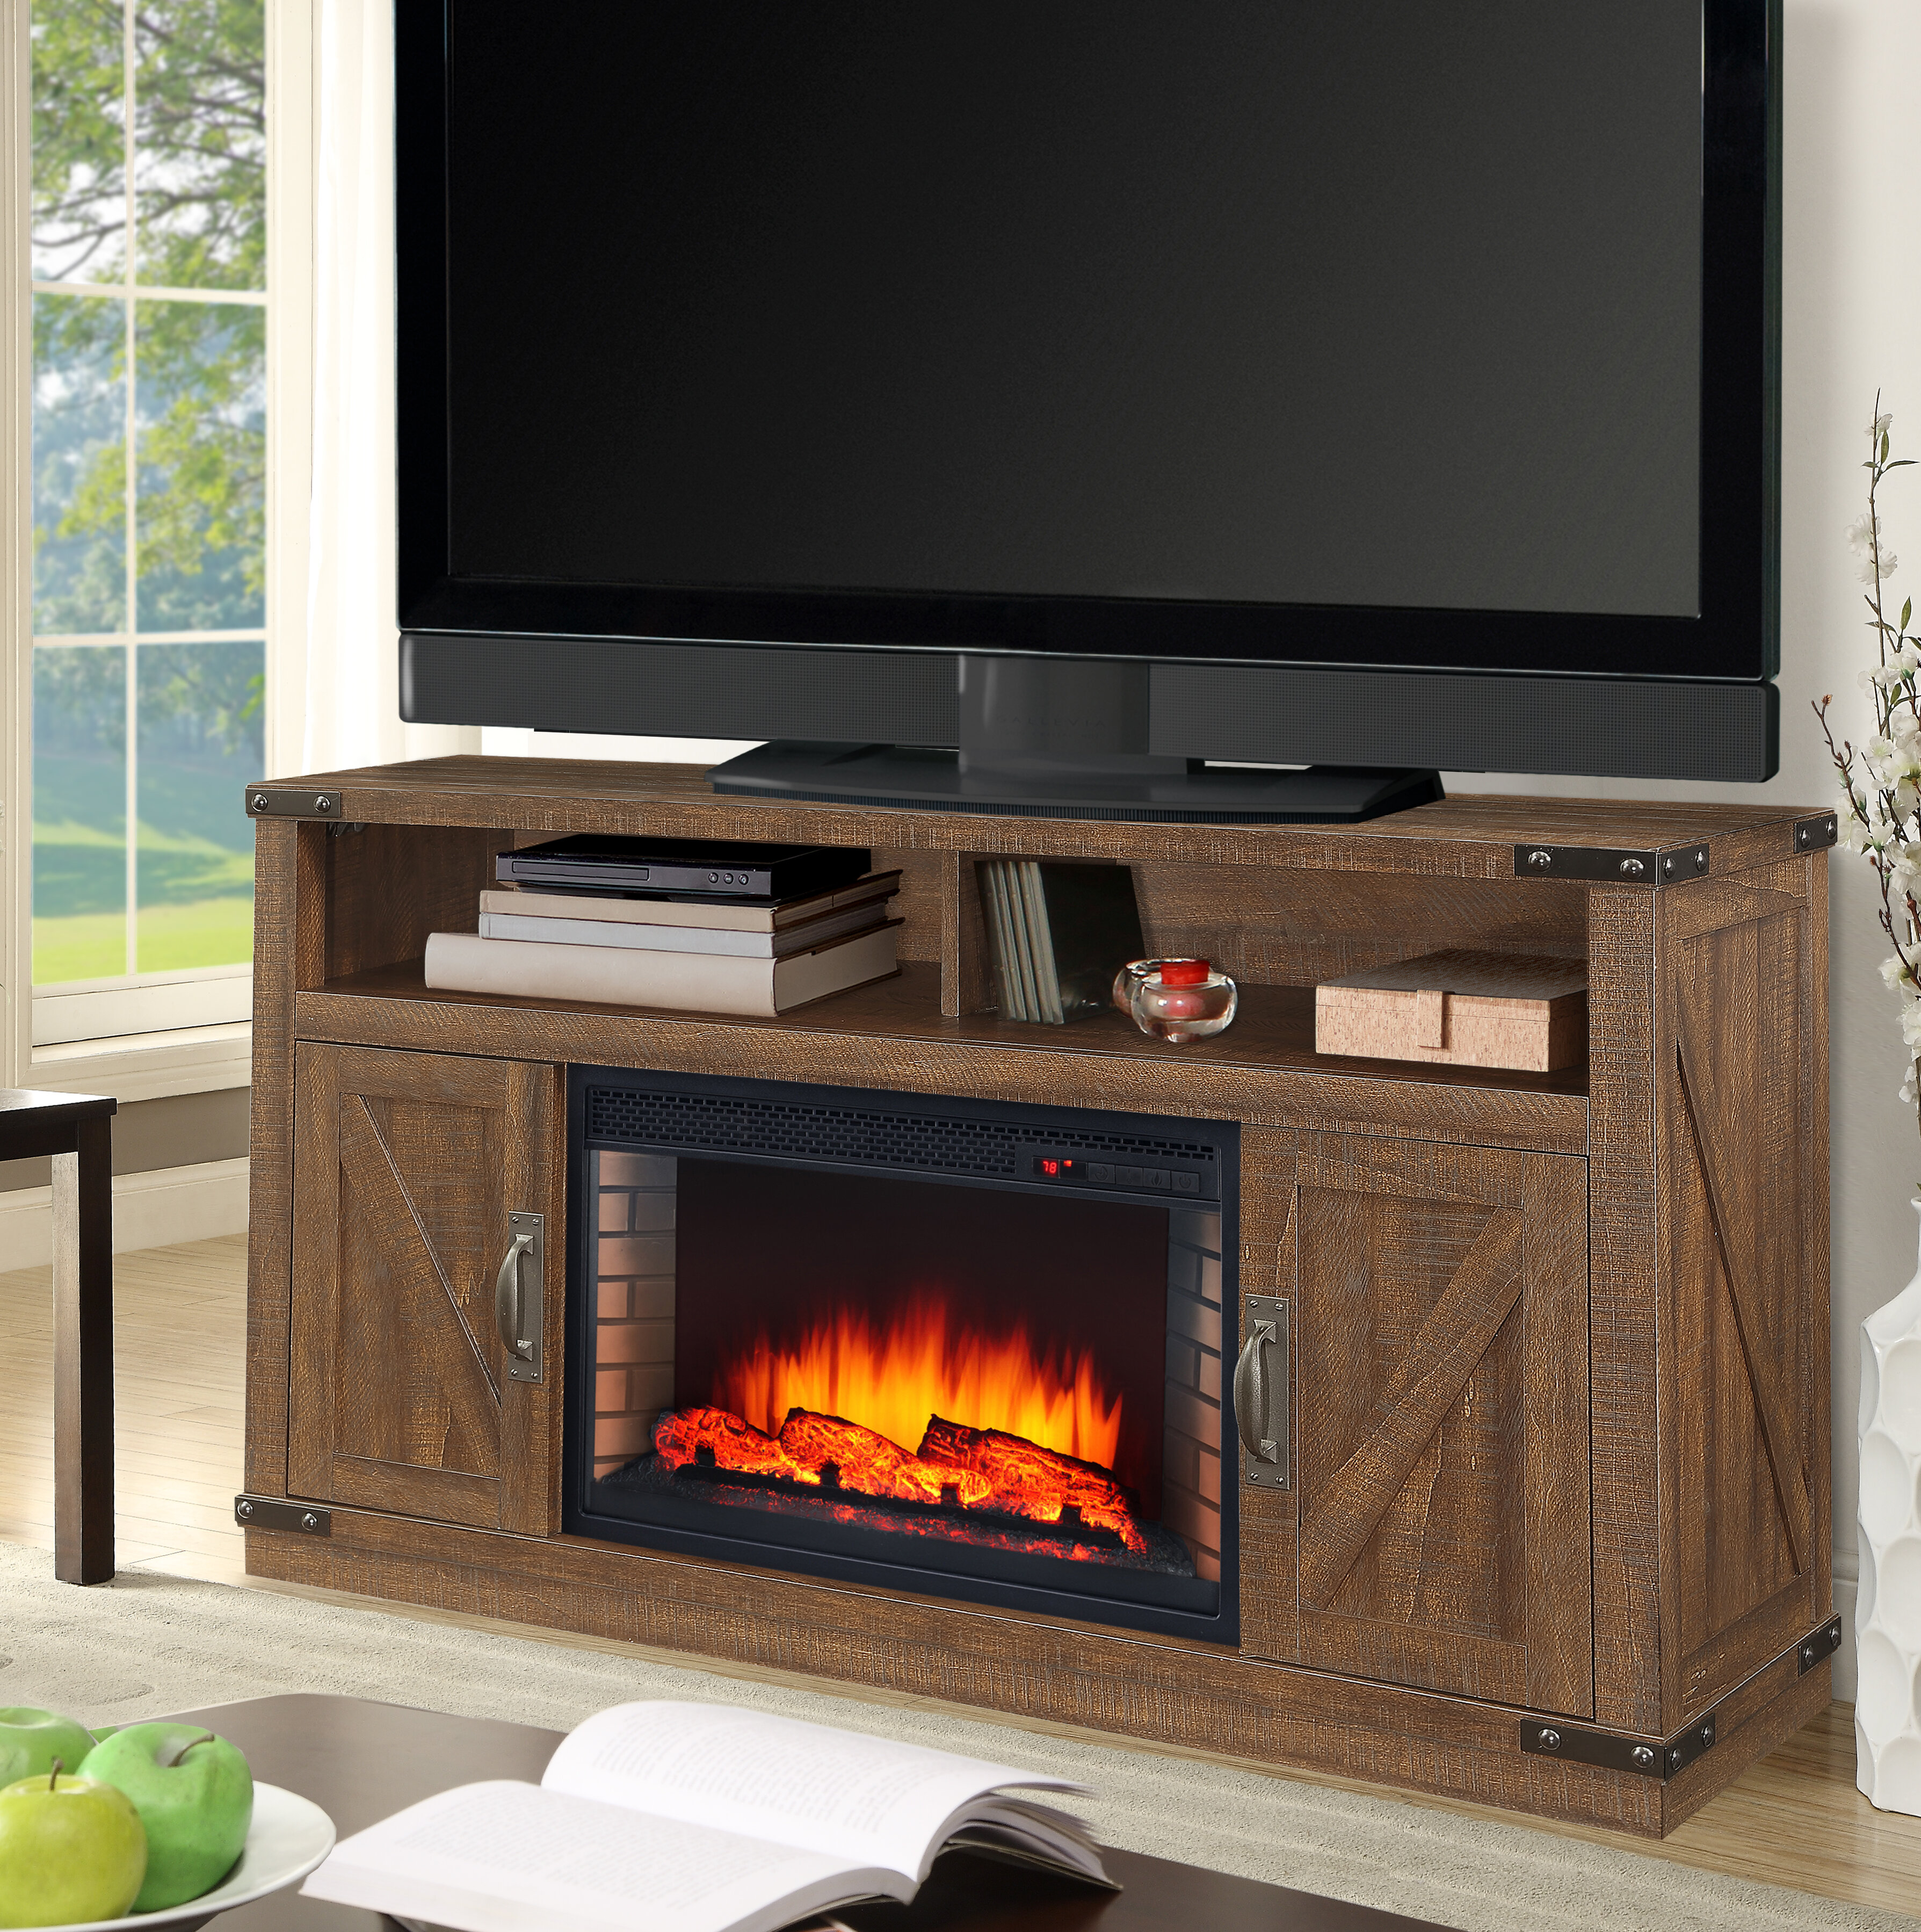 Muskoka Aberfoyle Tv Stand For Tvs Up To 48 With Electric Fireplace